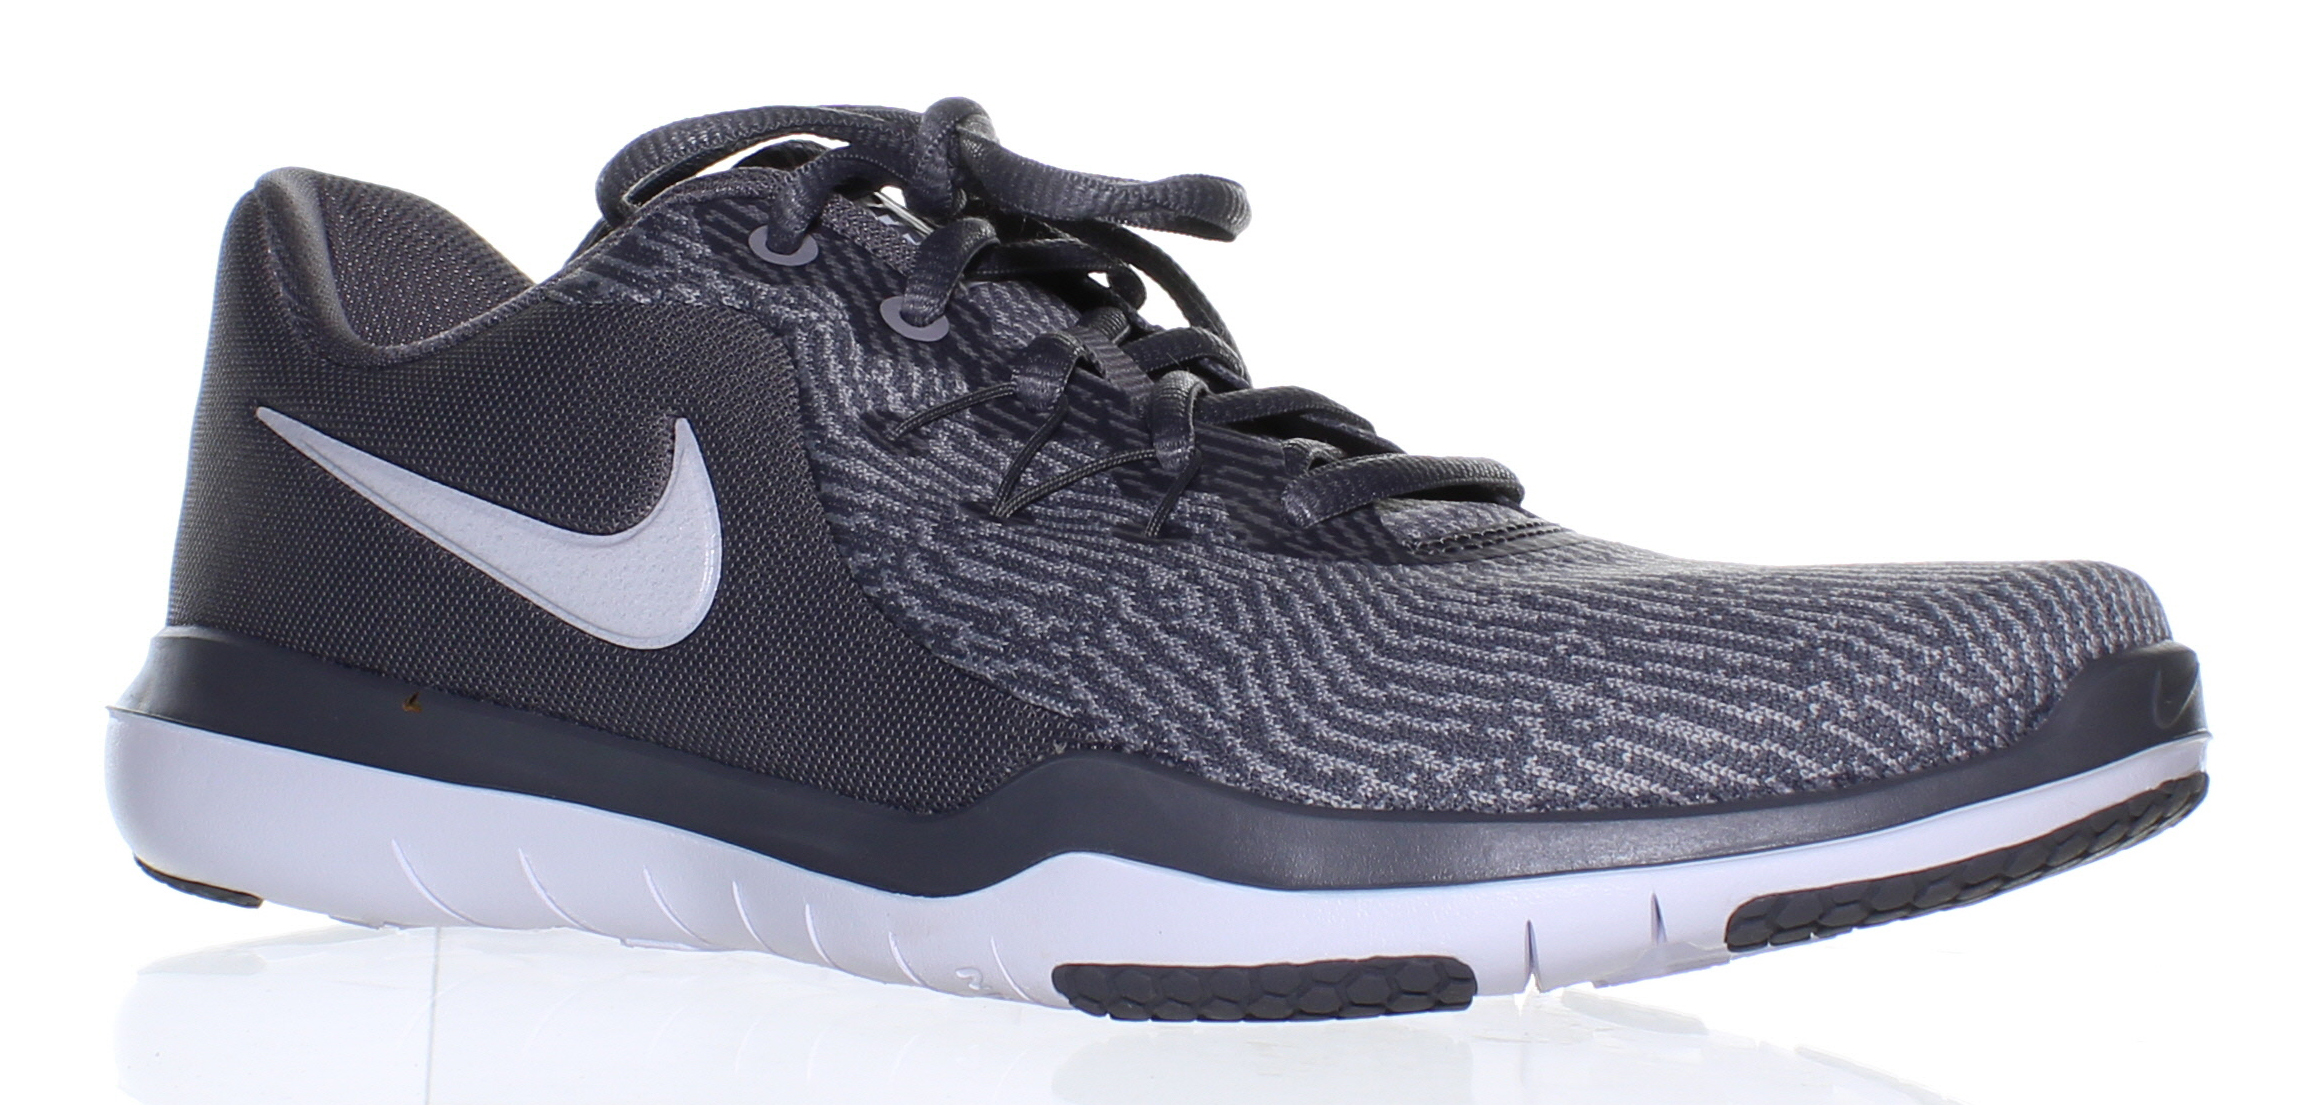 Nike Womens Flex Supreme Tr 6 Gray Running Shoes Size 9 (33970)